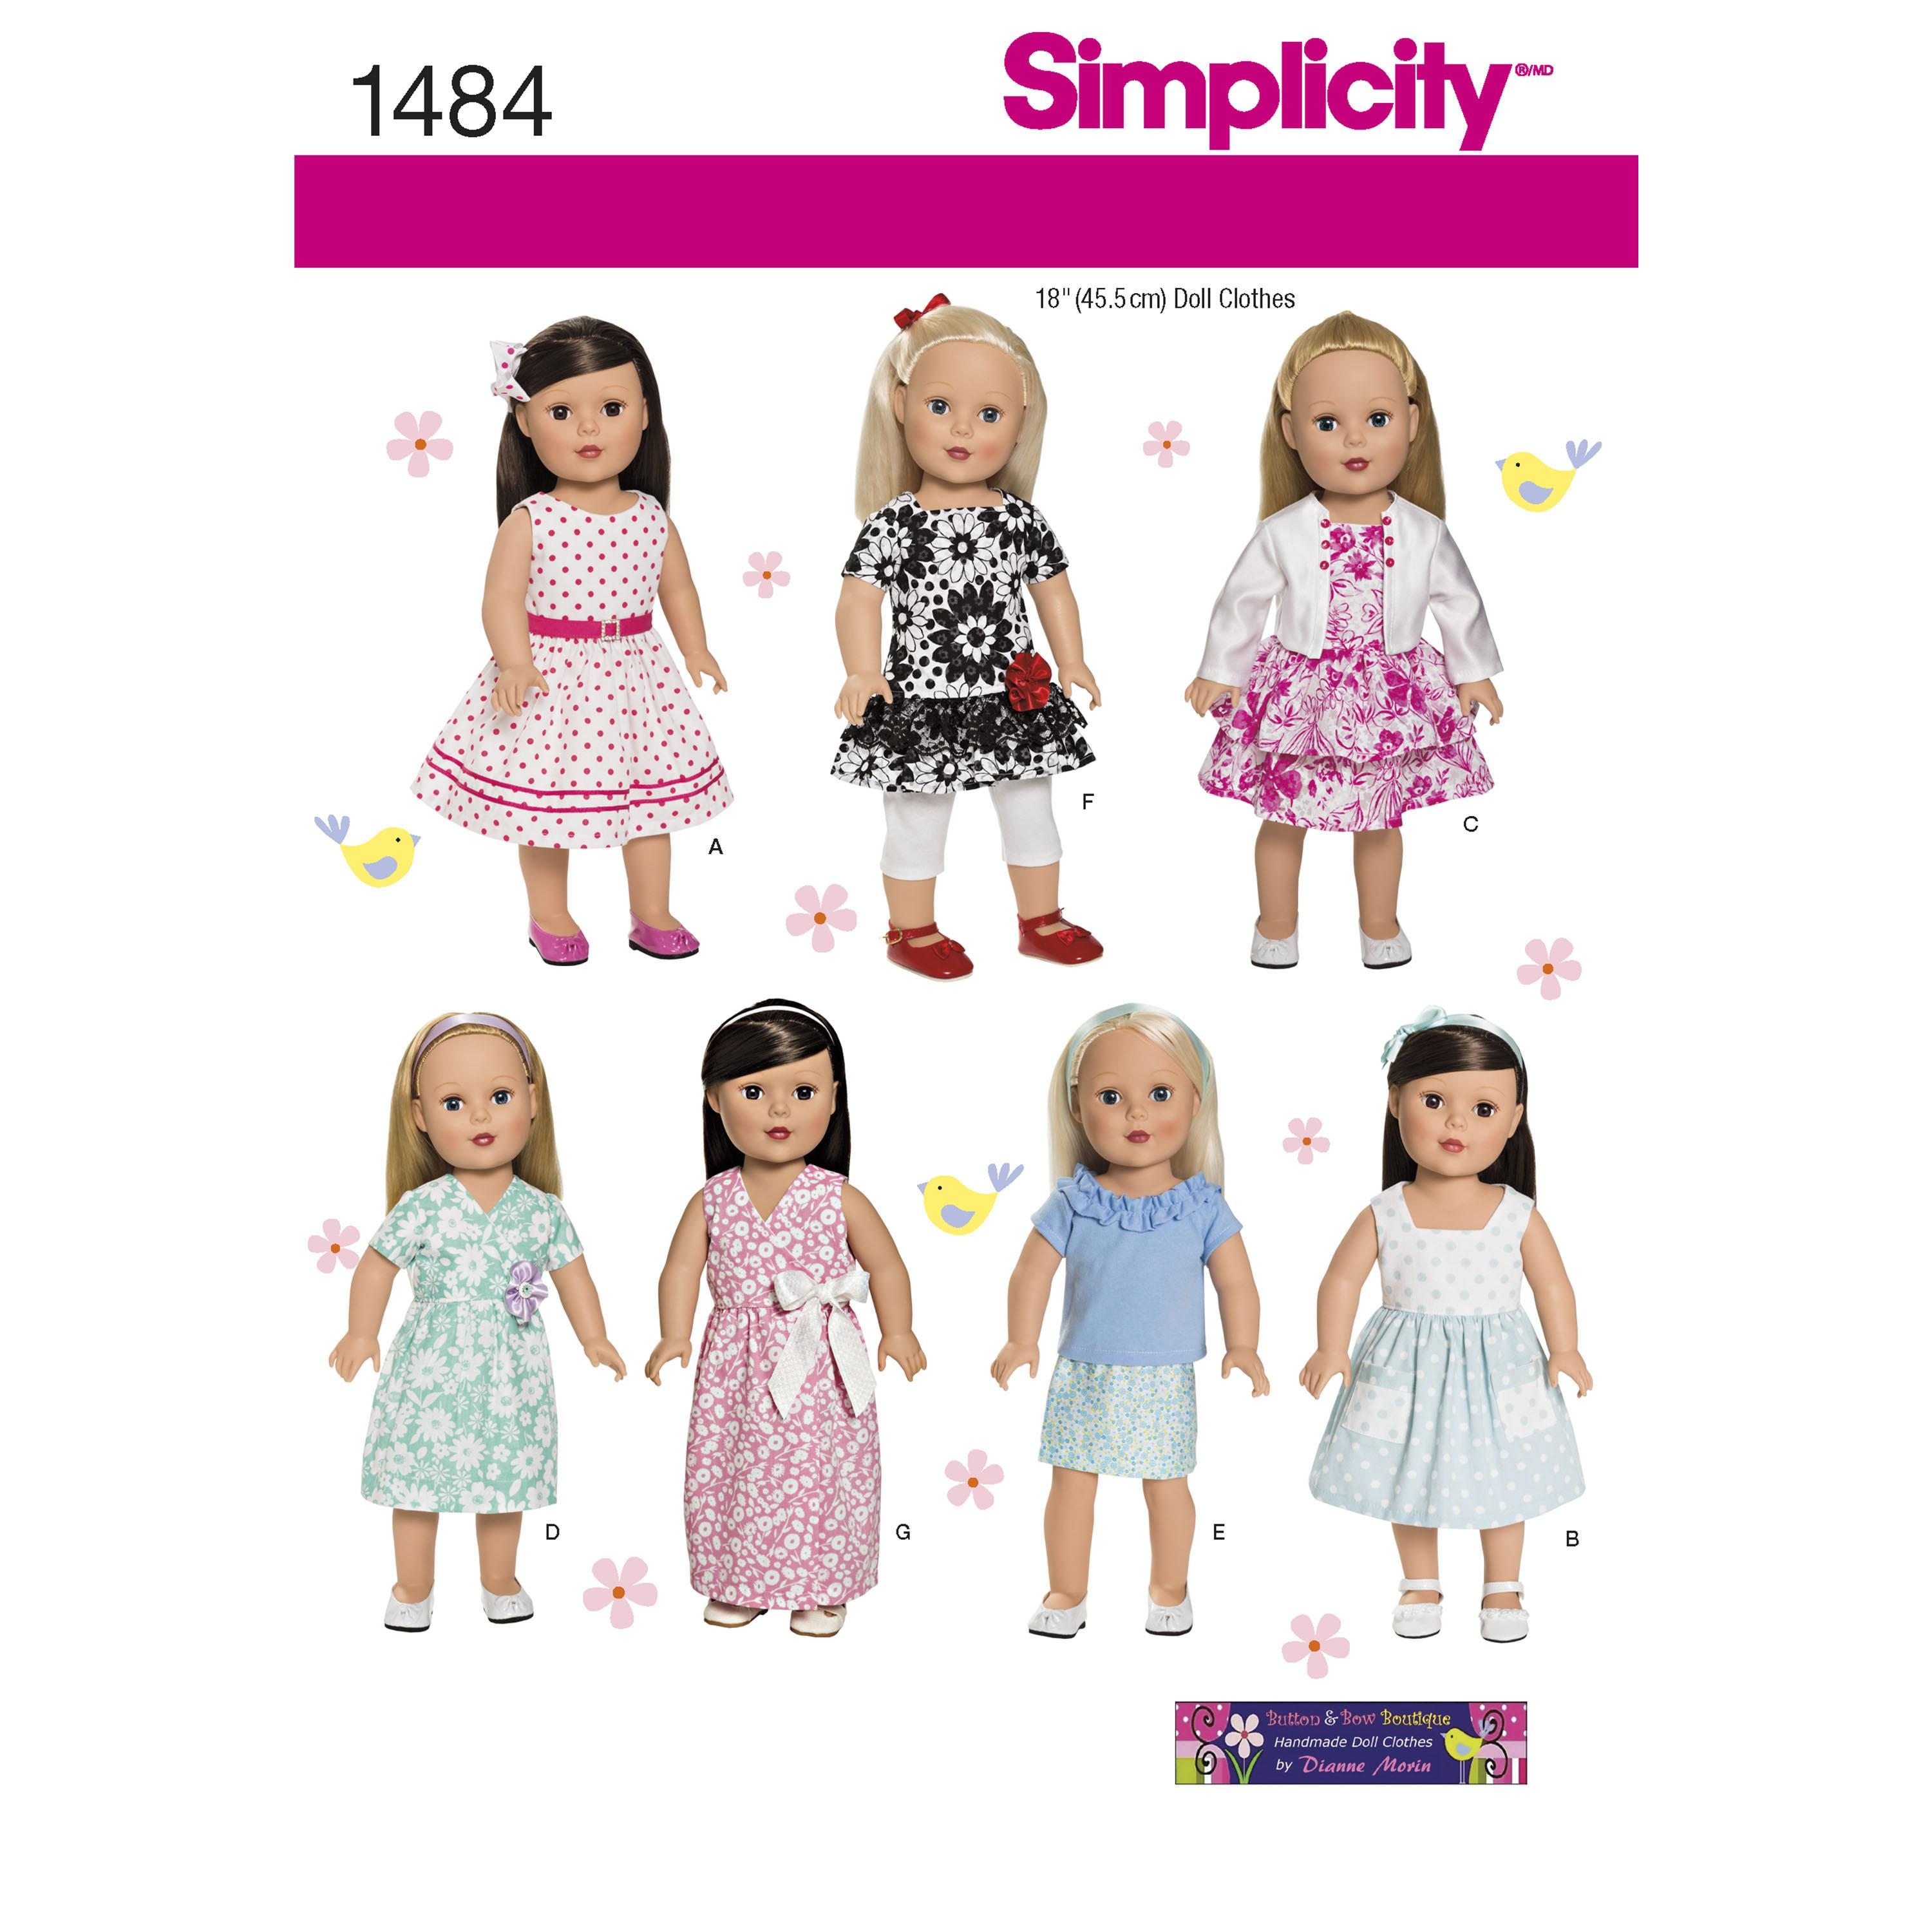 "Simplicity S1484 18"" Doll Clothes"